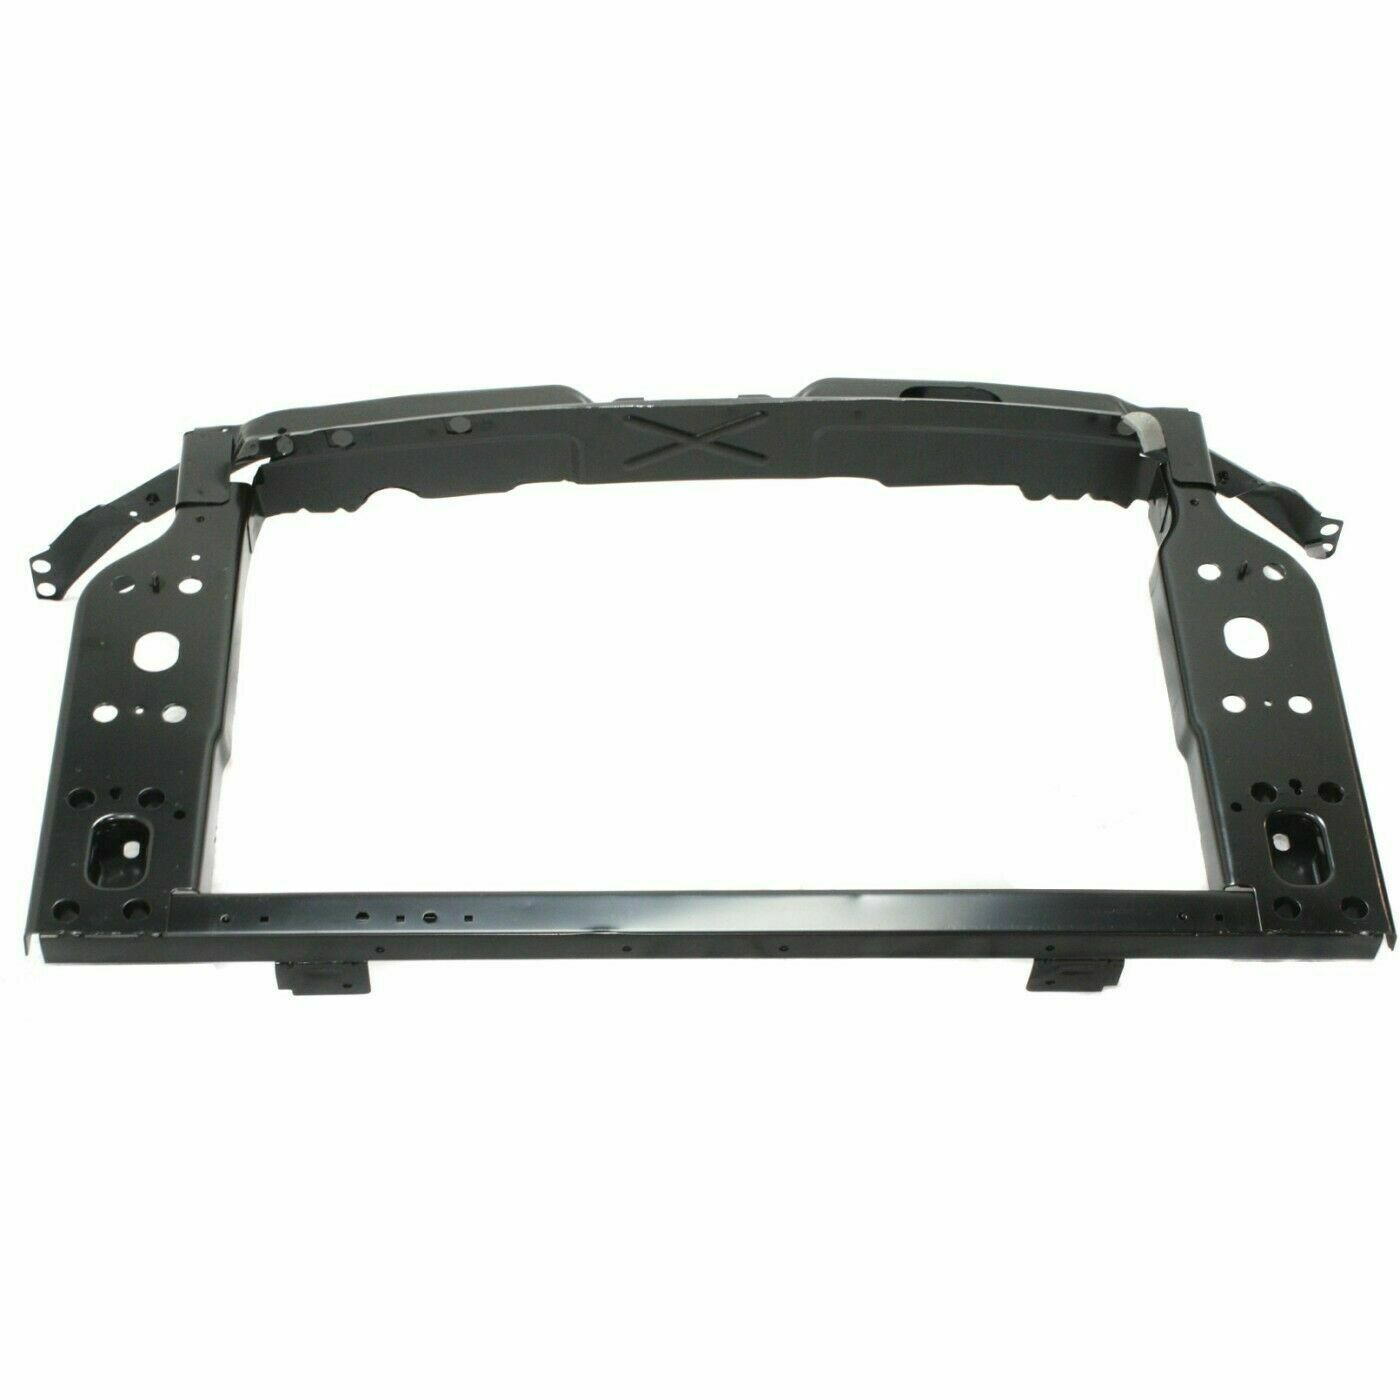 Radiator Support For 2012-2016 Fiat 500 Naturally Aspirated Assembly